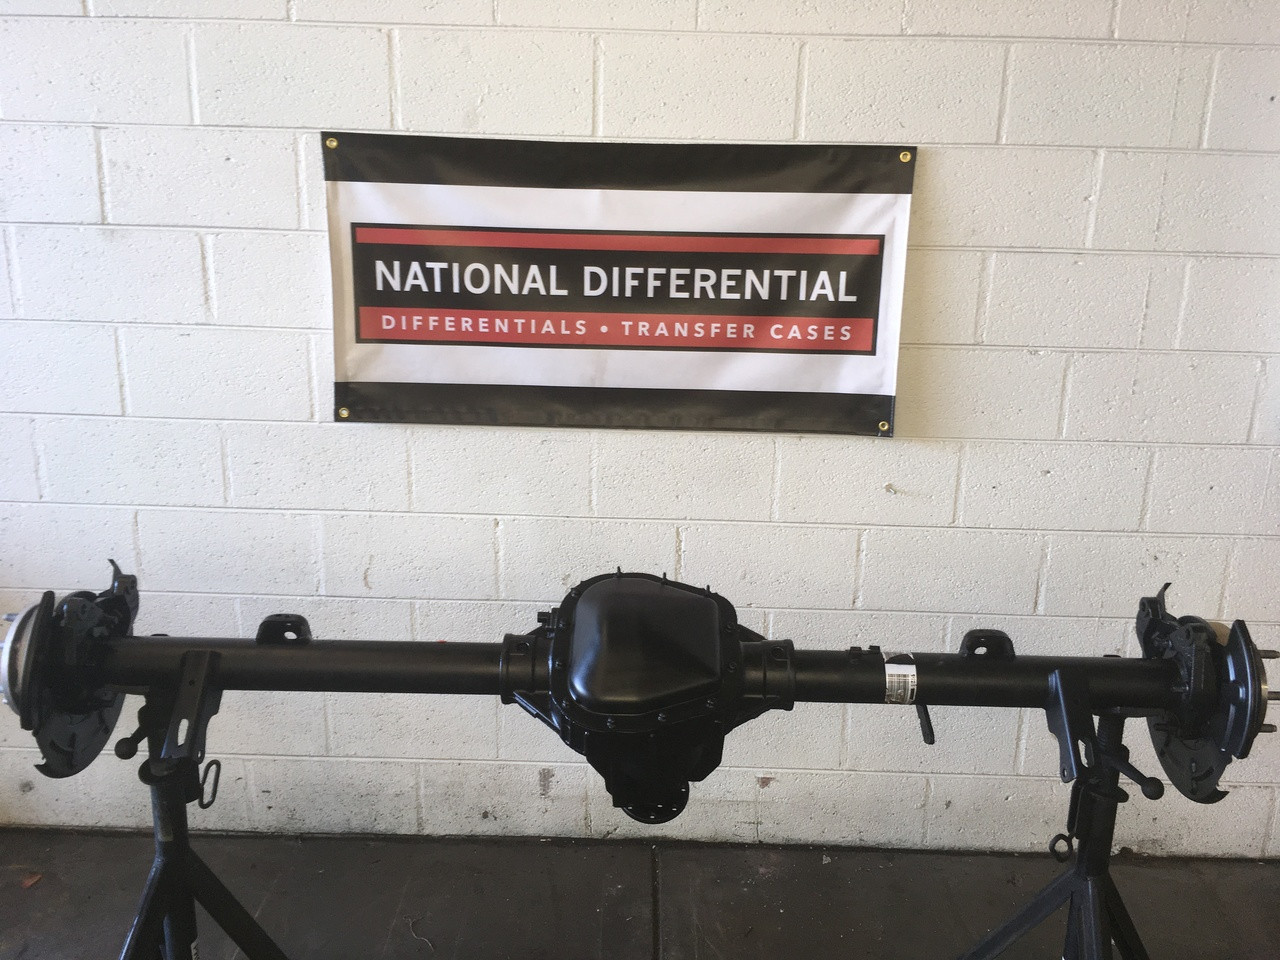 2009, 2010, 2011, 2012, 2013 or 2014 Ford F-150 Raptor Pickup Truck Rear Differential 9.75 Inch with E-Lock and 4.10 Gears from National Differential in Colorado Springs